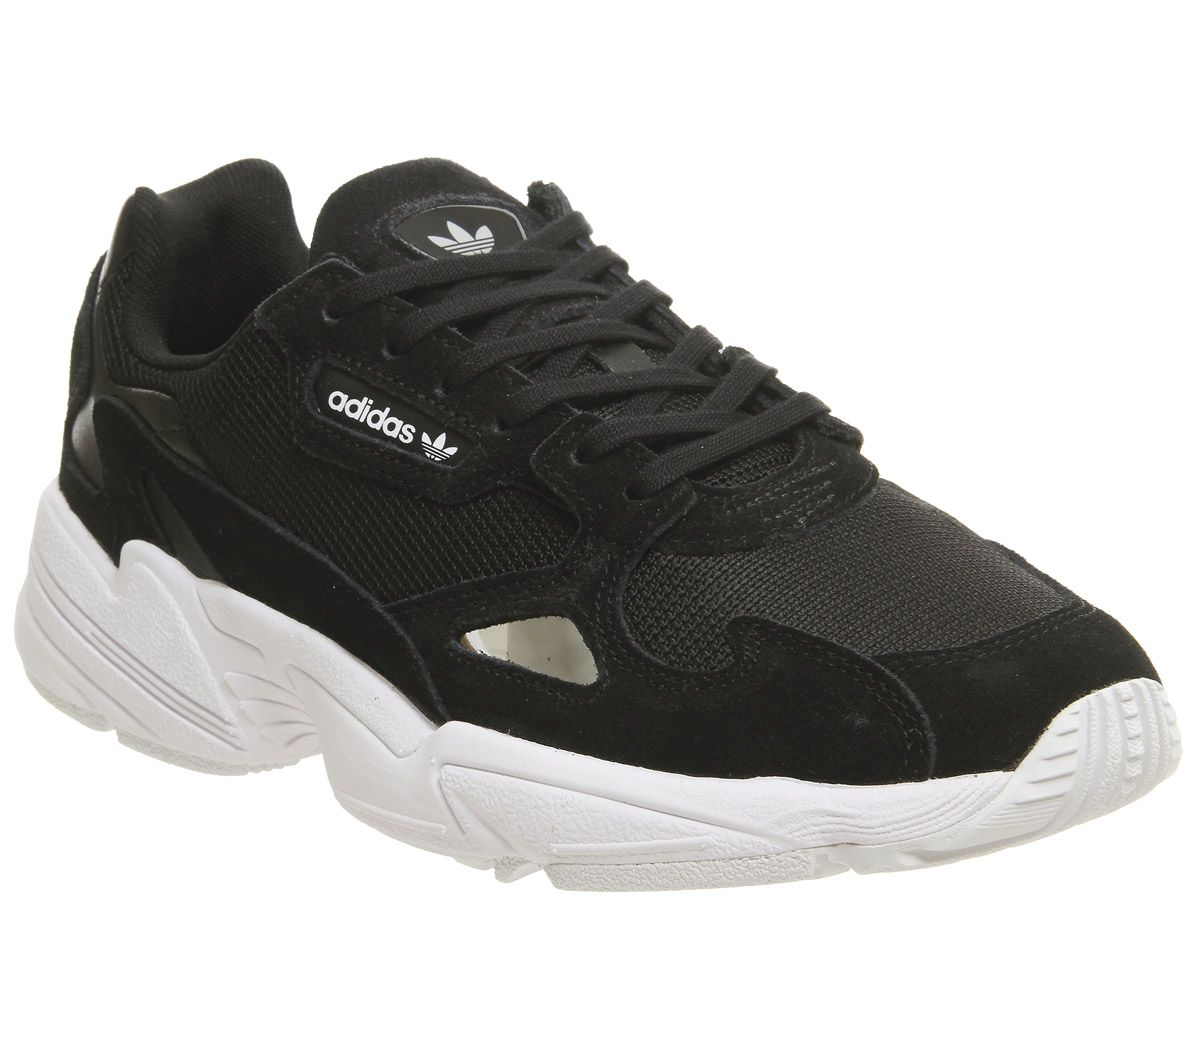 quality design e96fb 5298a adidas Falcon Trainers Core Black White - Hers trainers